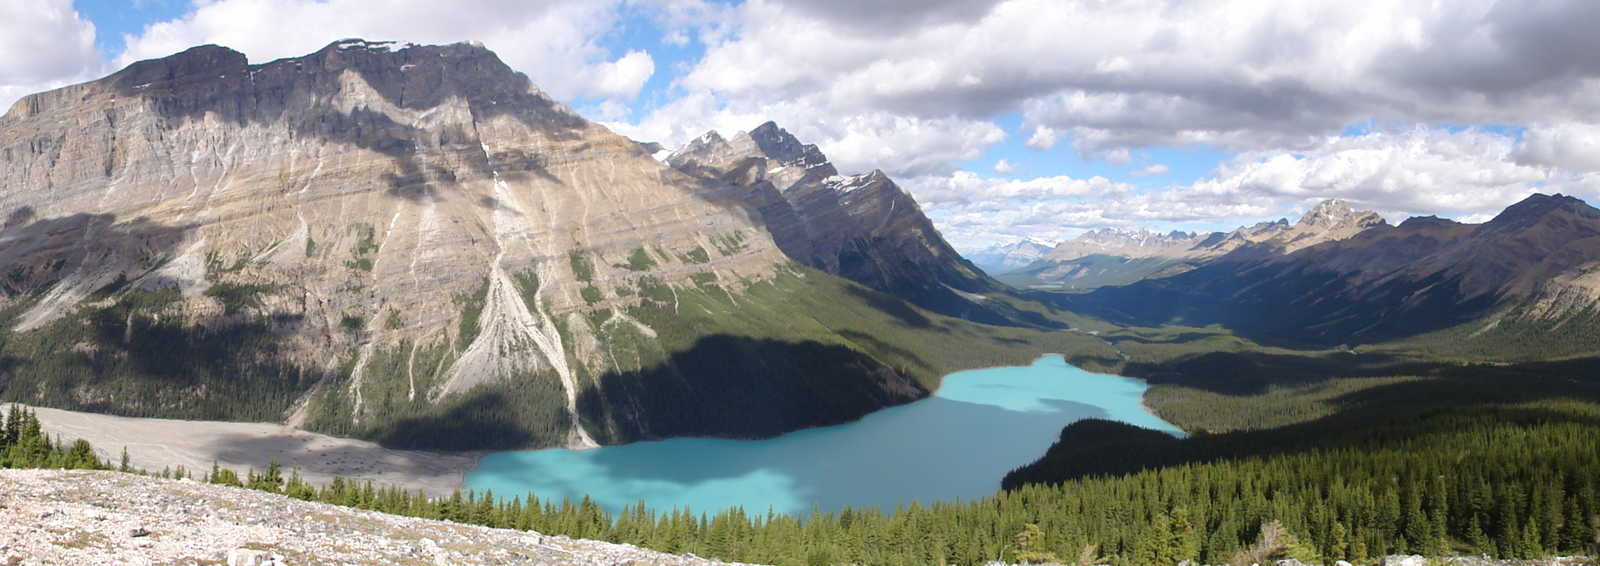 Peyto Lake in the Canadian Rockies, Canada